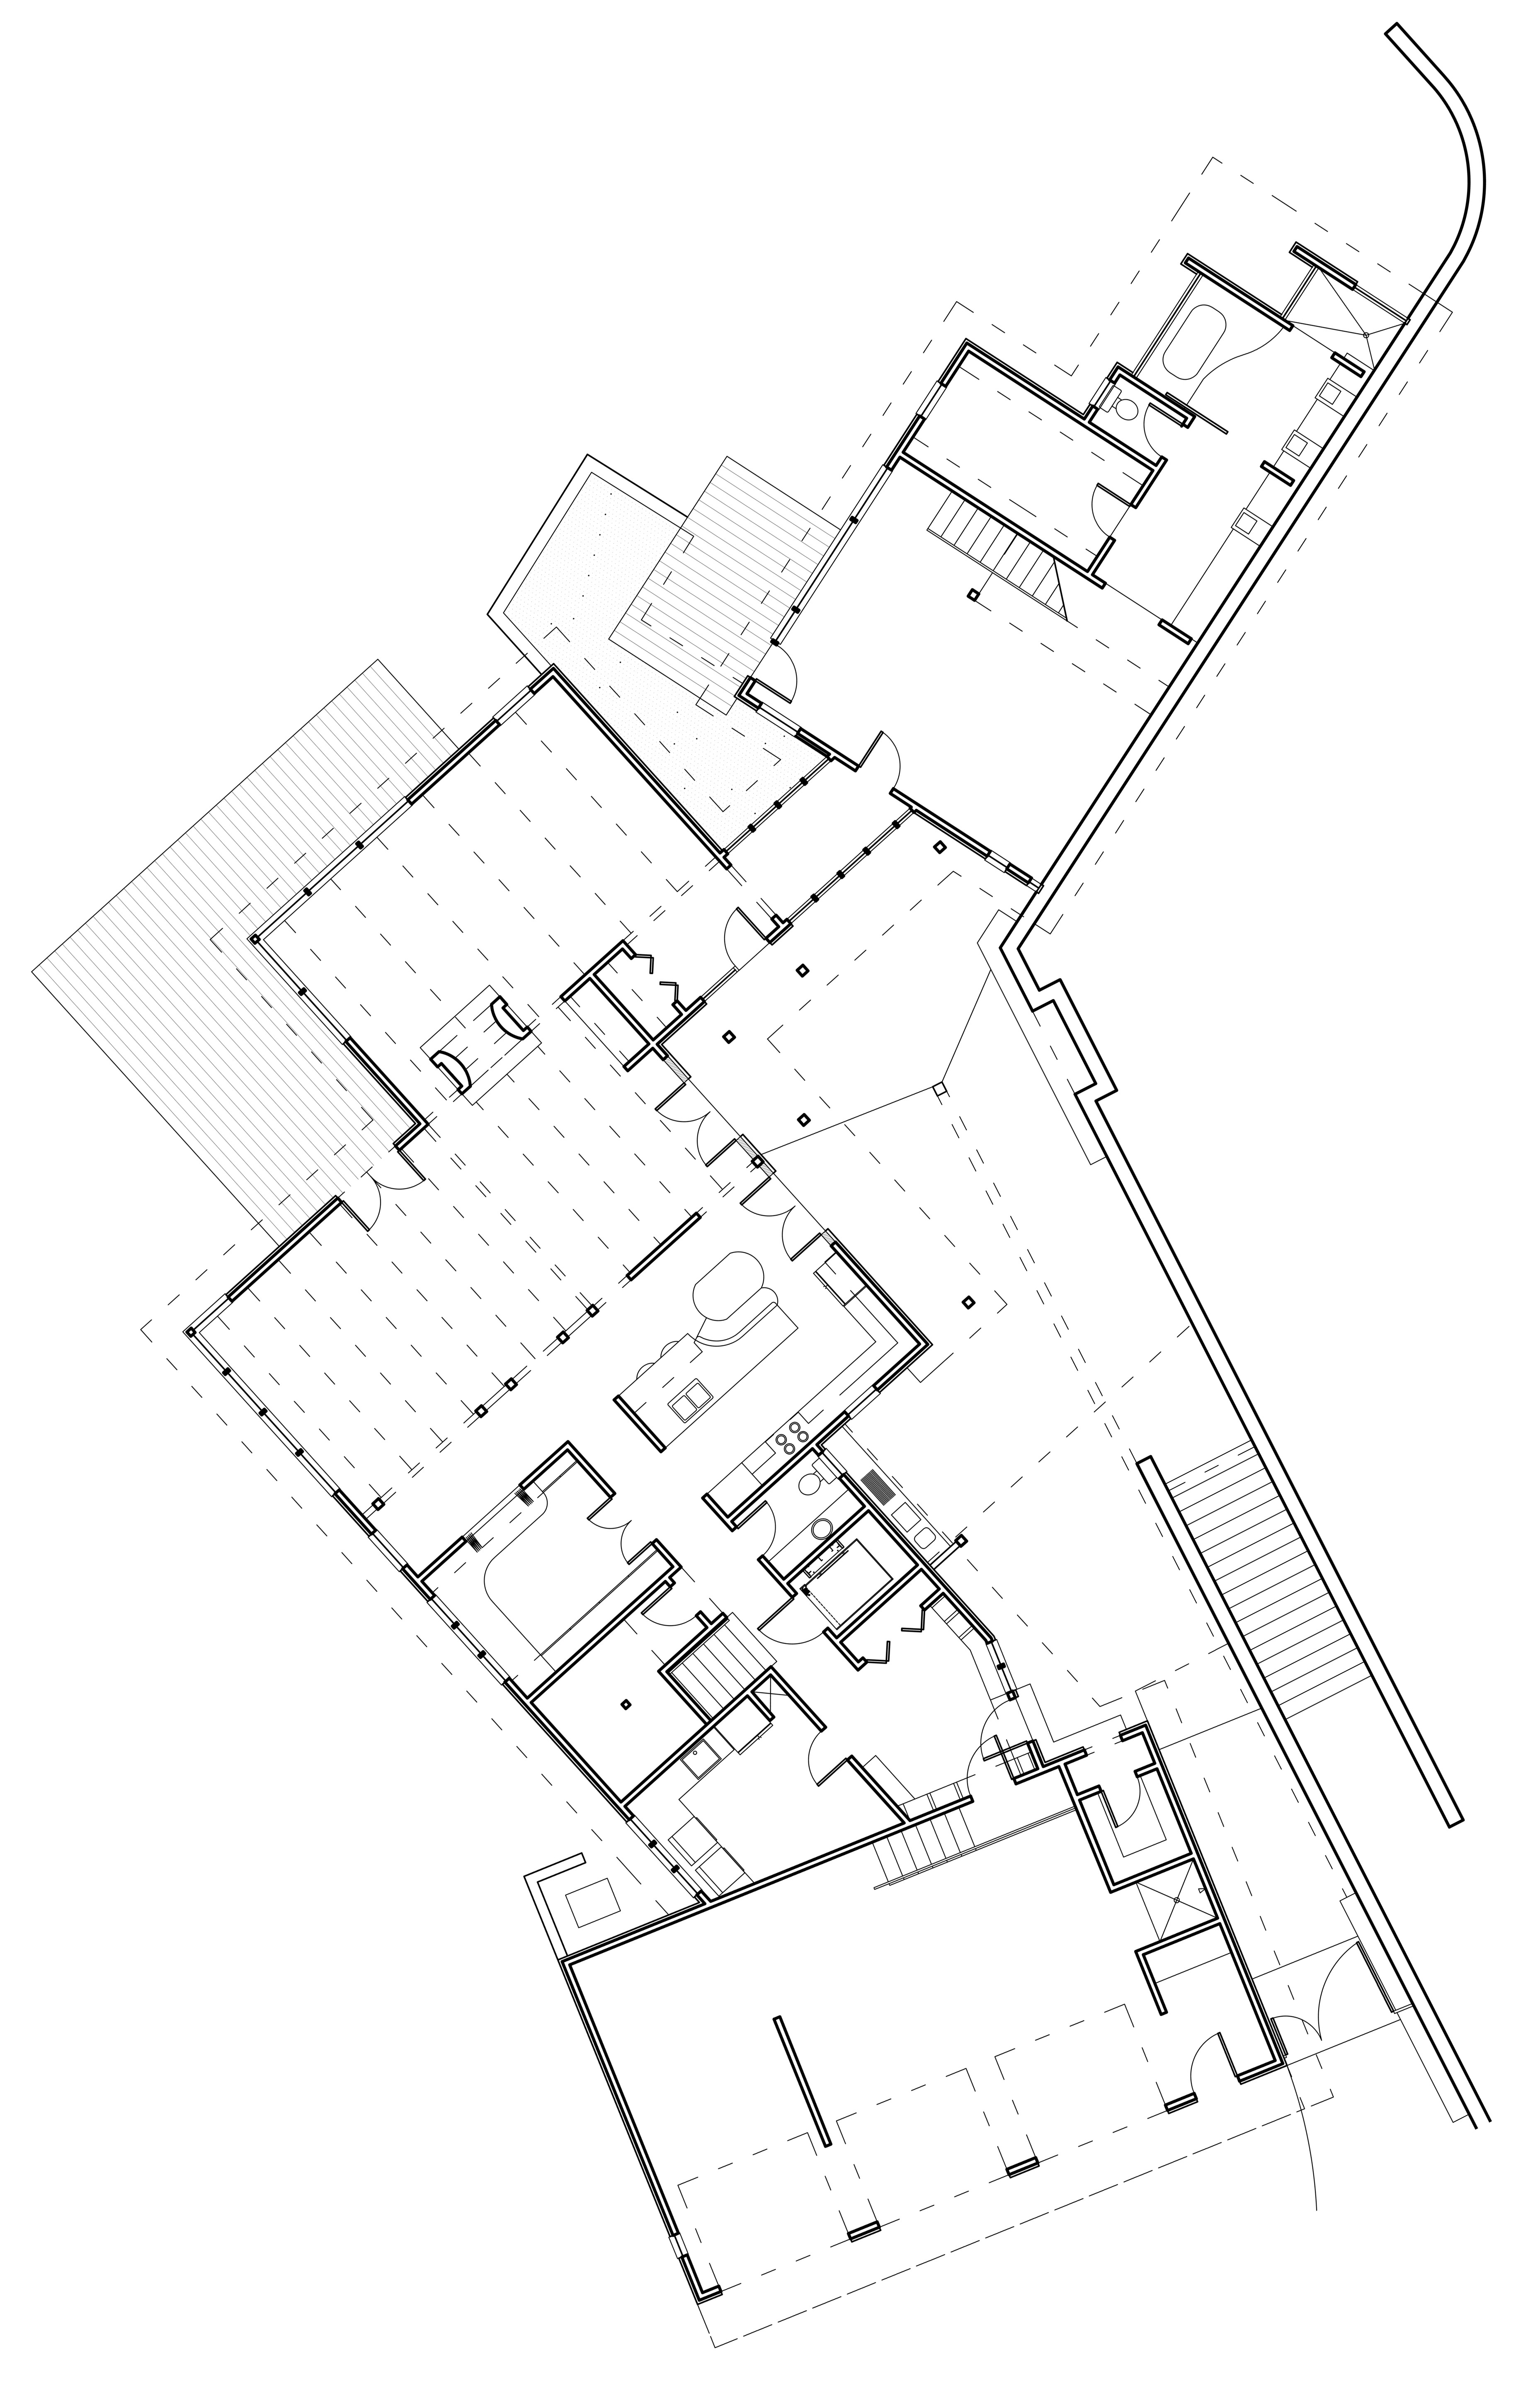 Modern House Plans Designs with Photos Best Of Modern House Plans Contemporary Home Designs Floor Plan 09